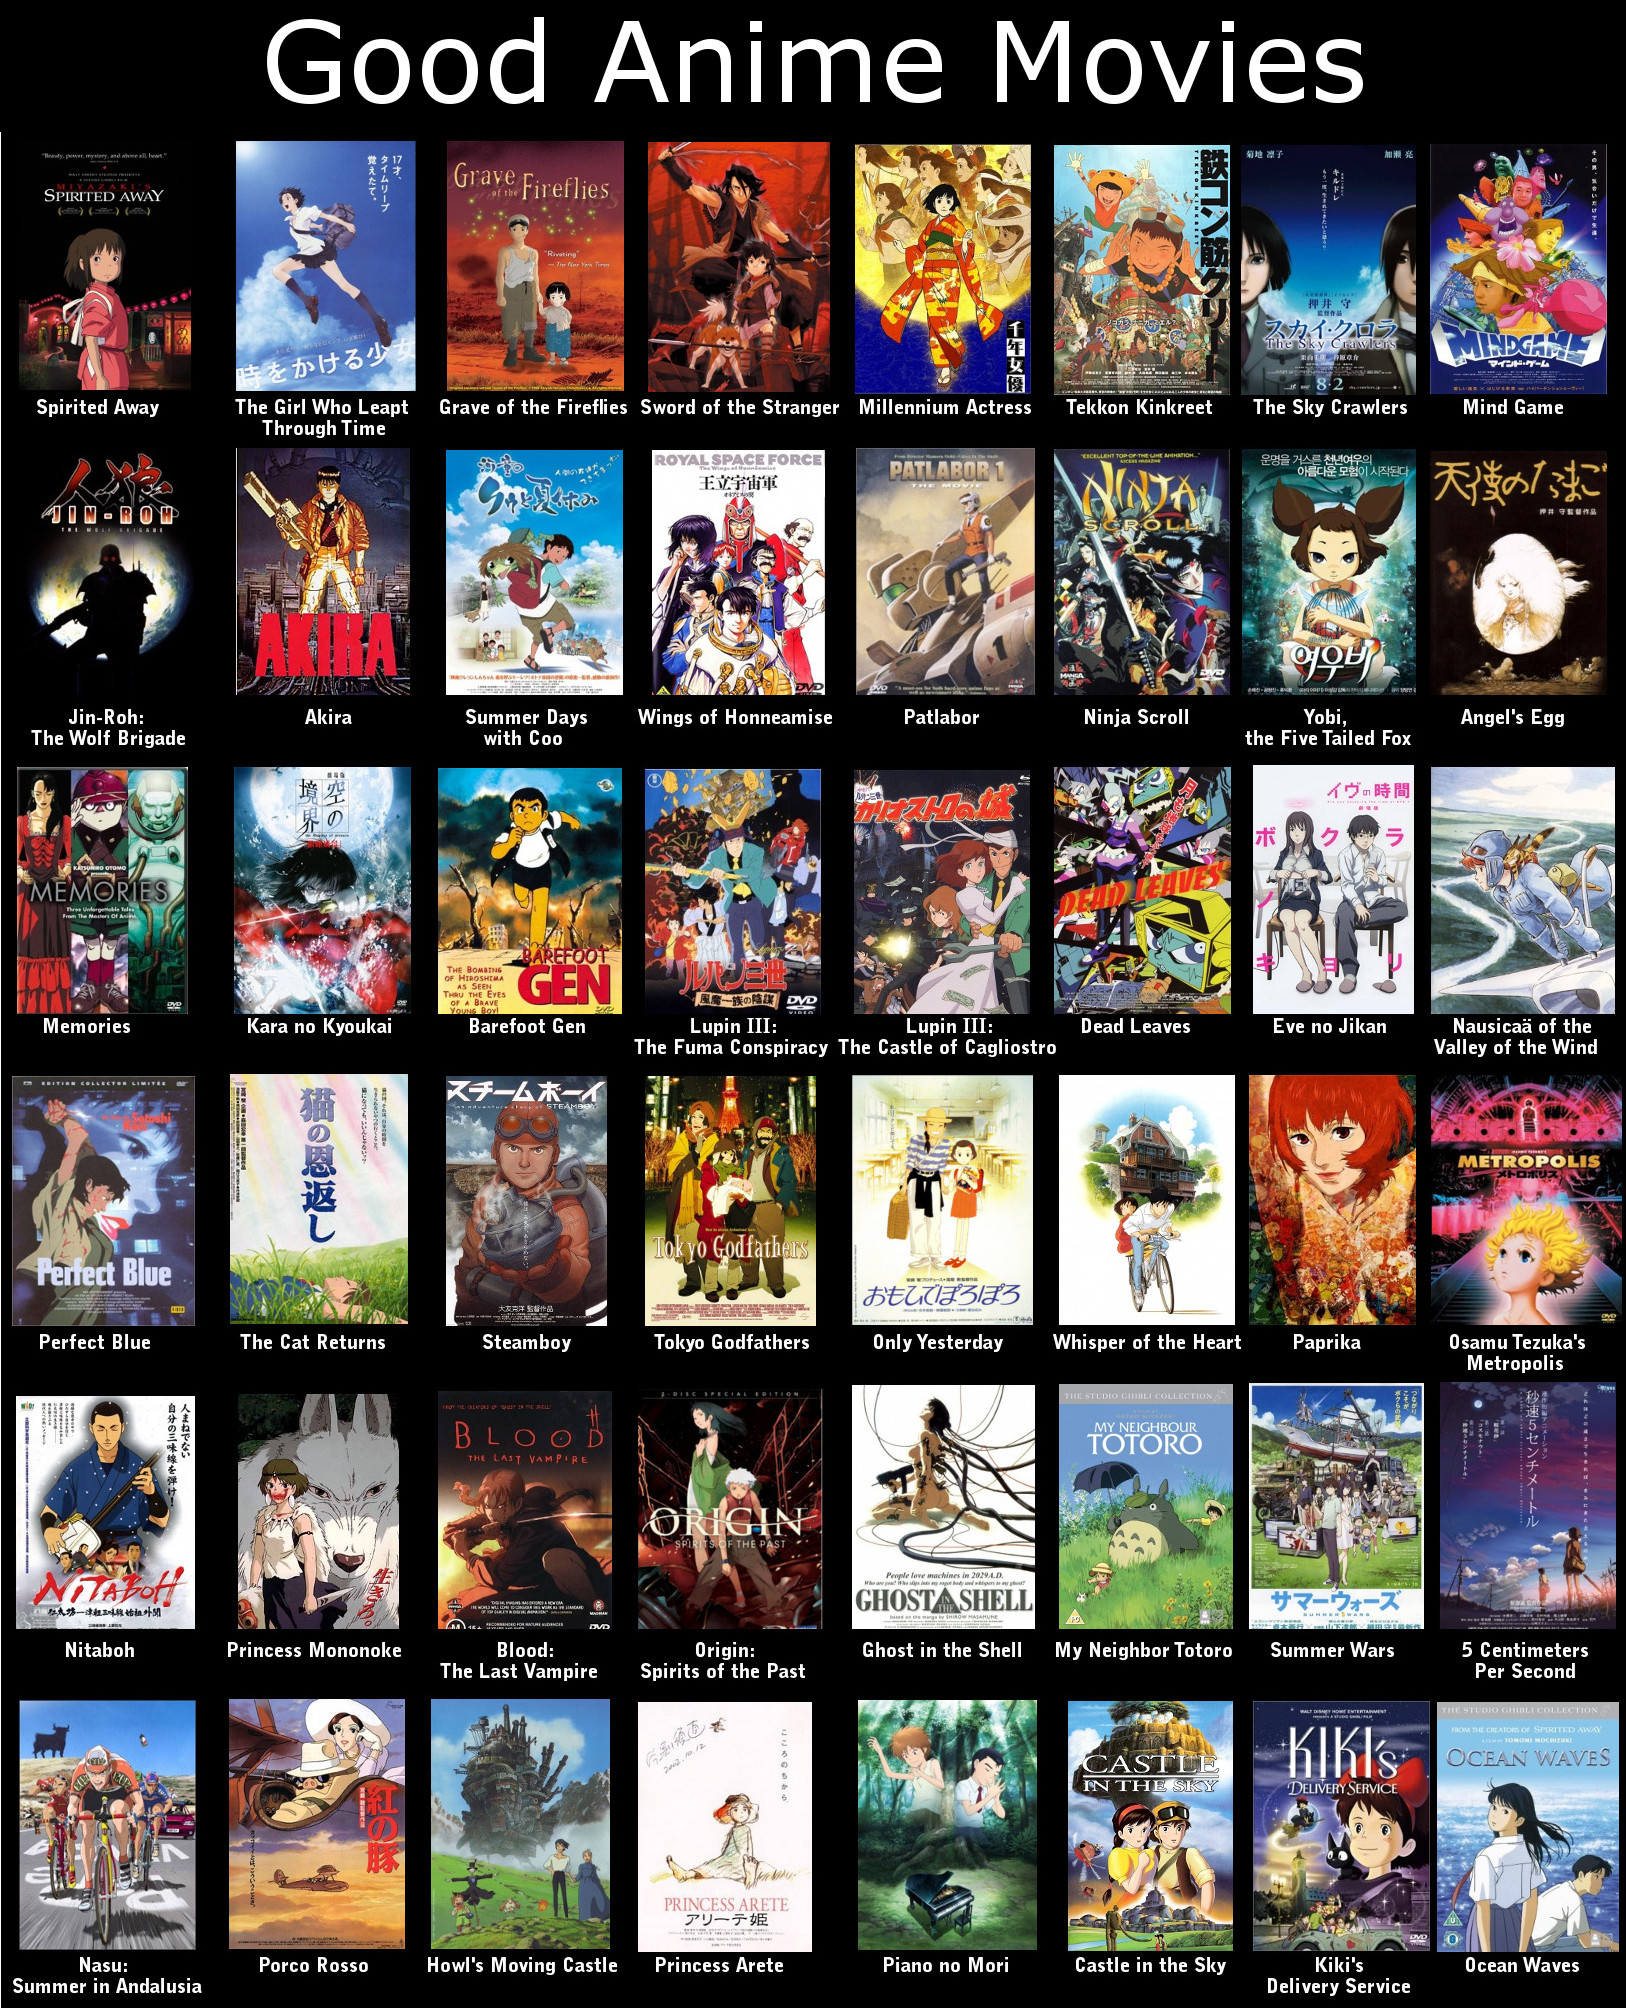 Movies: Before You Ask /a/ Try These